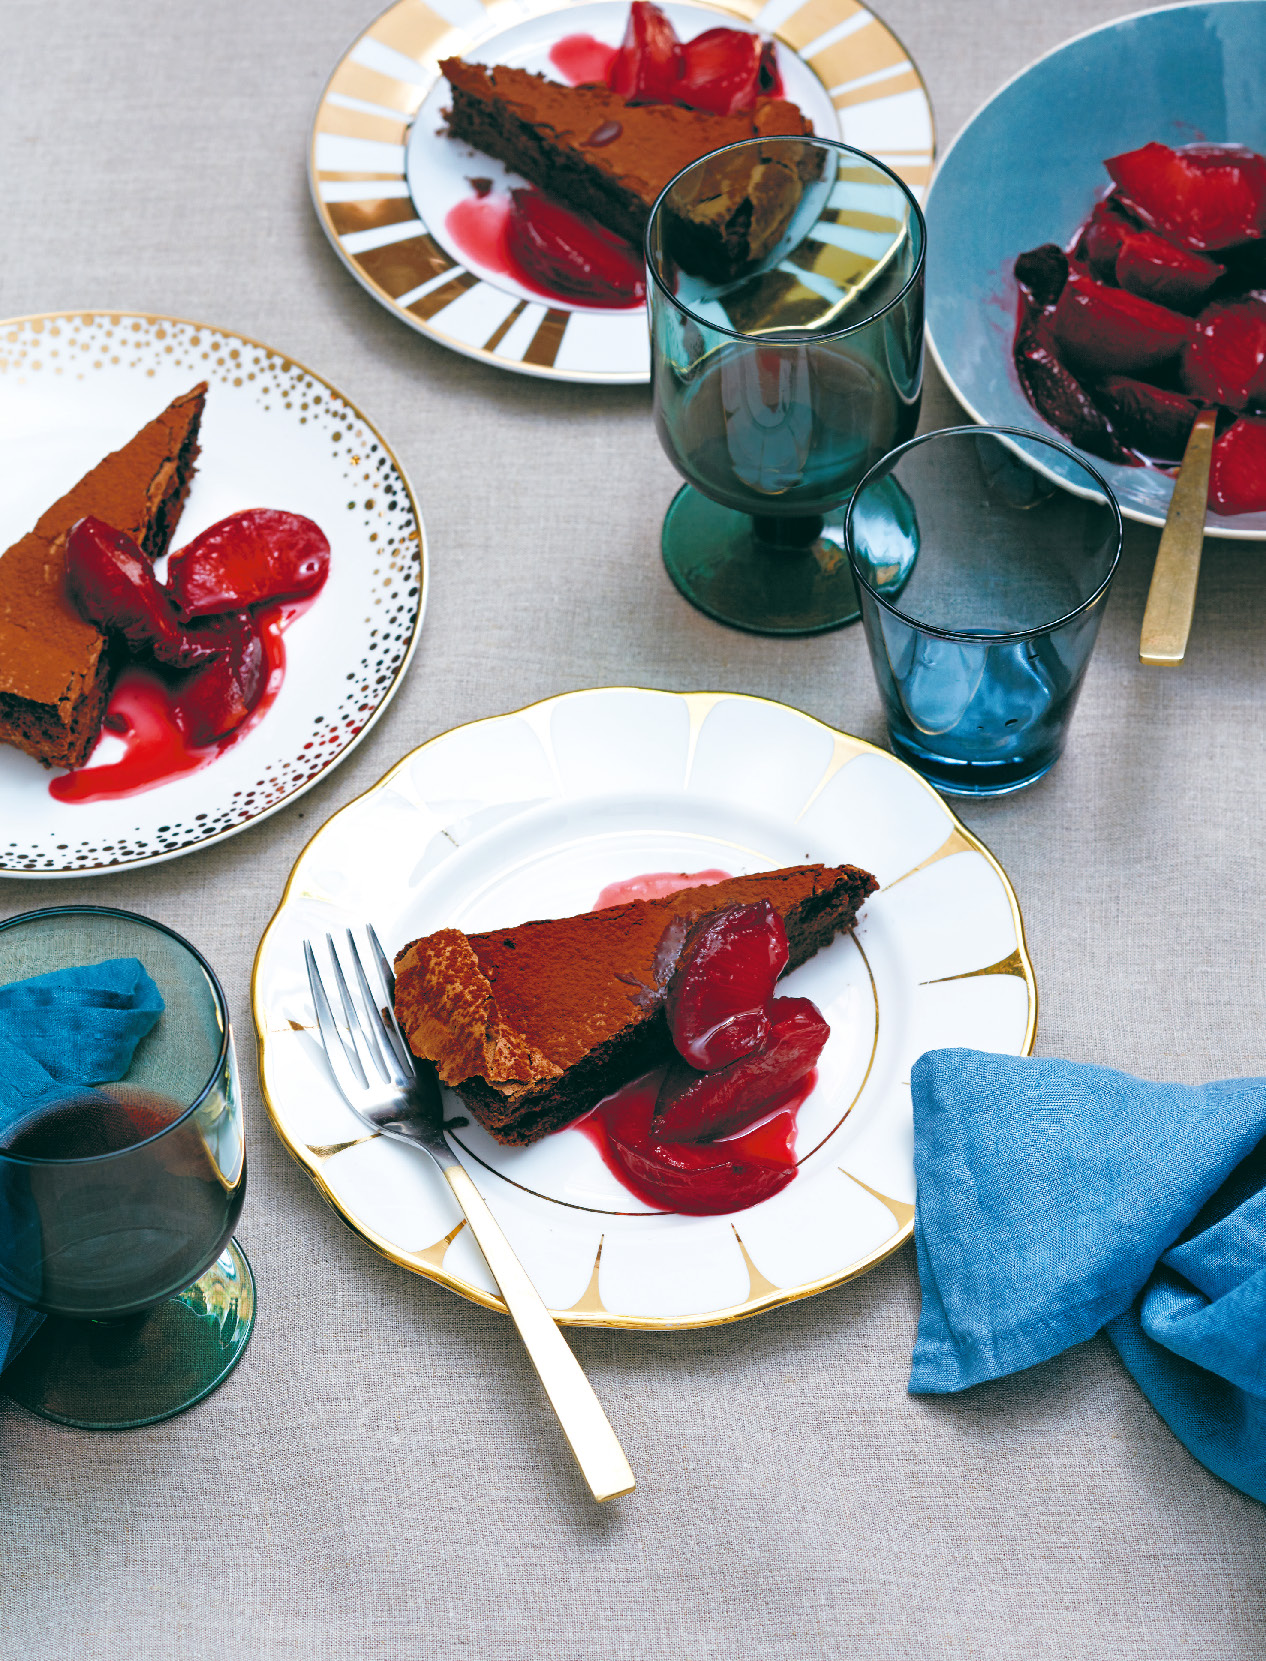 Flourless chocolate torte with blood plum compote